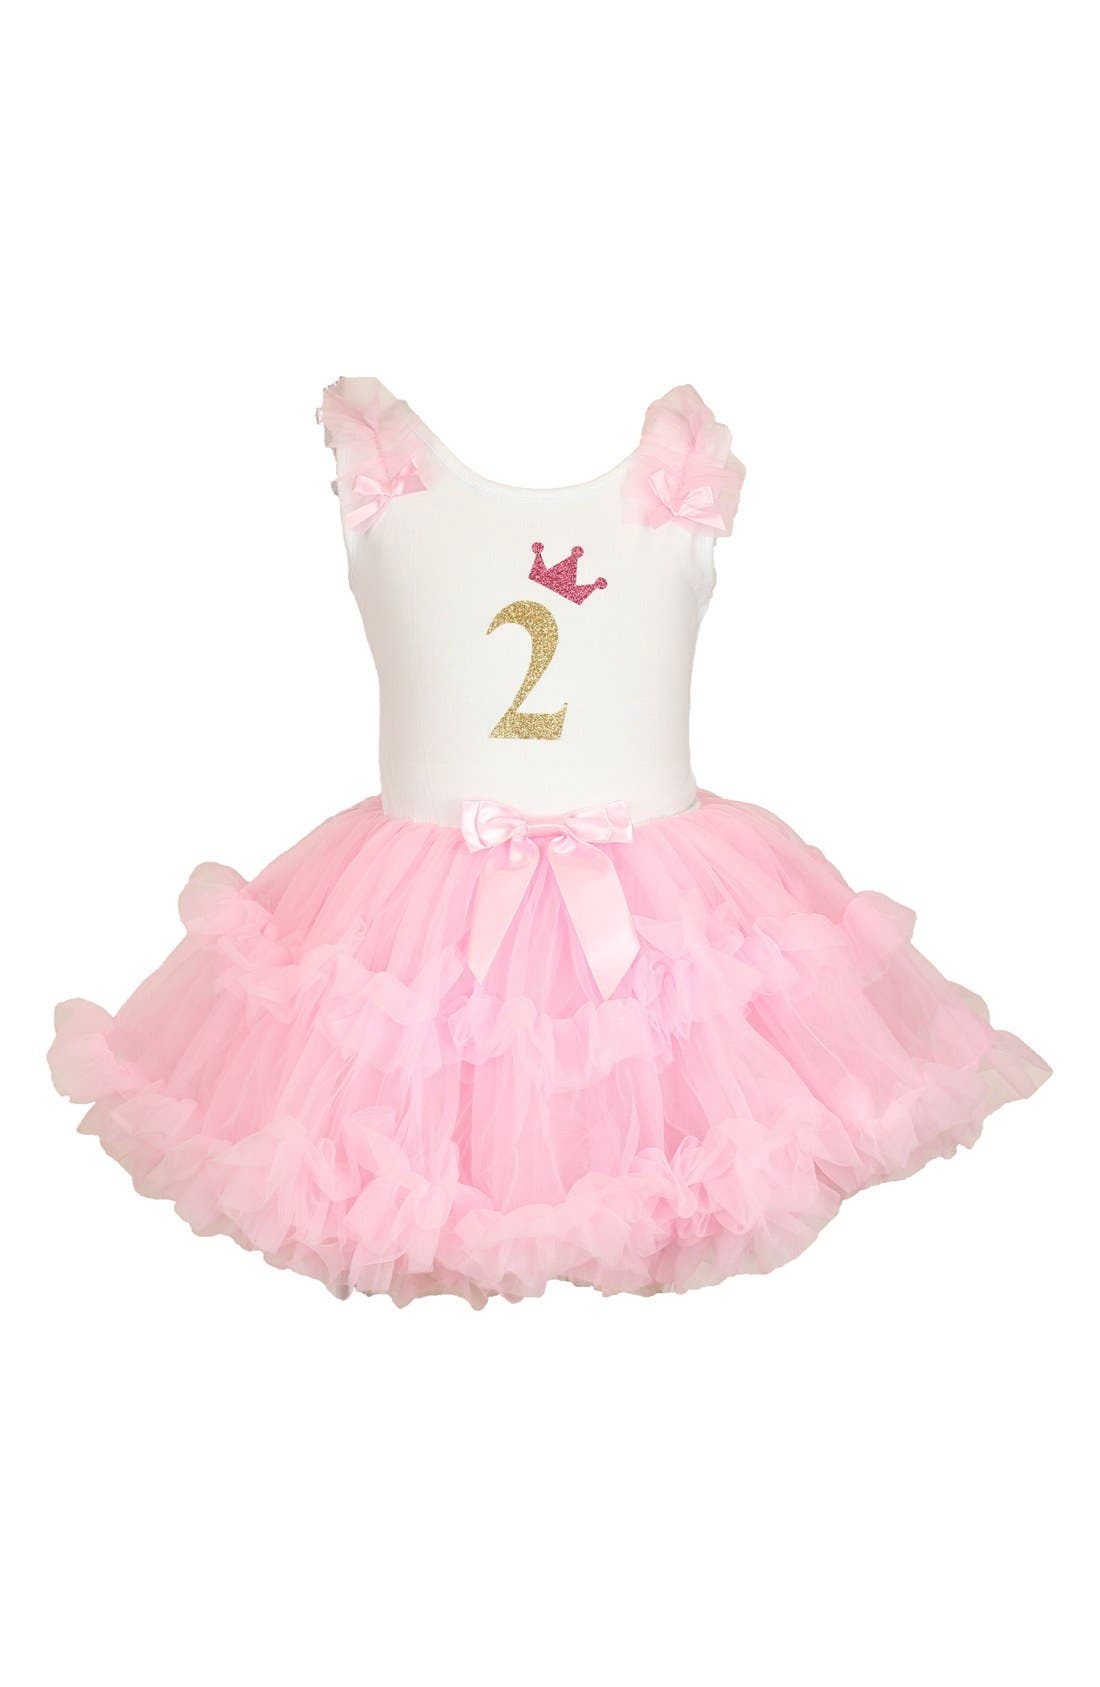 Alternate Image 1 Selected - Popatu Birthday Print Tutu Dress (Toddler Girls)